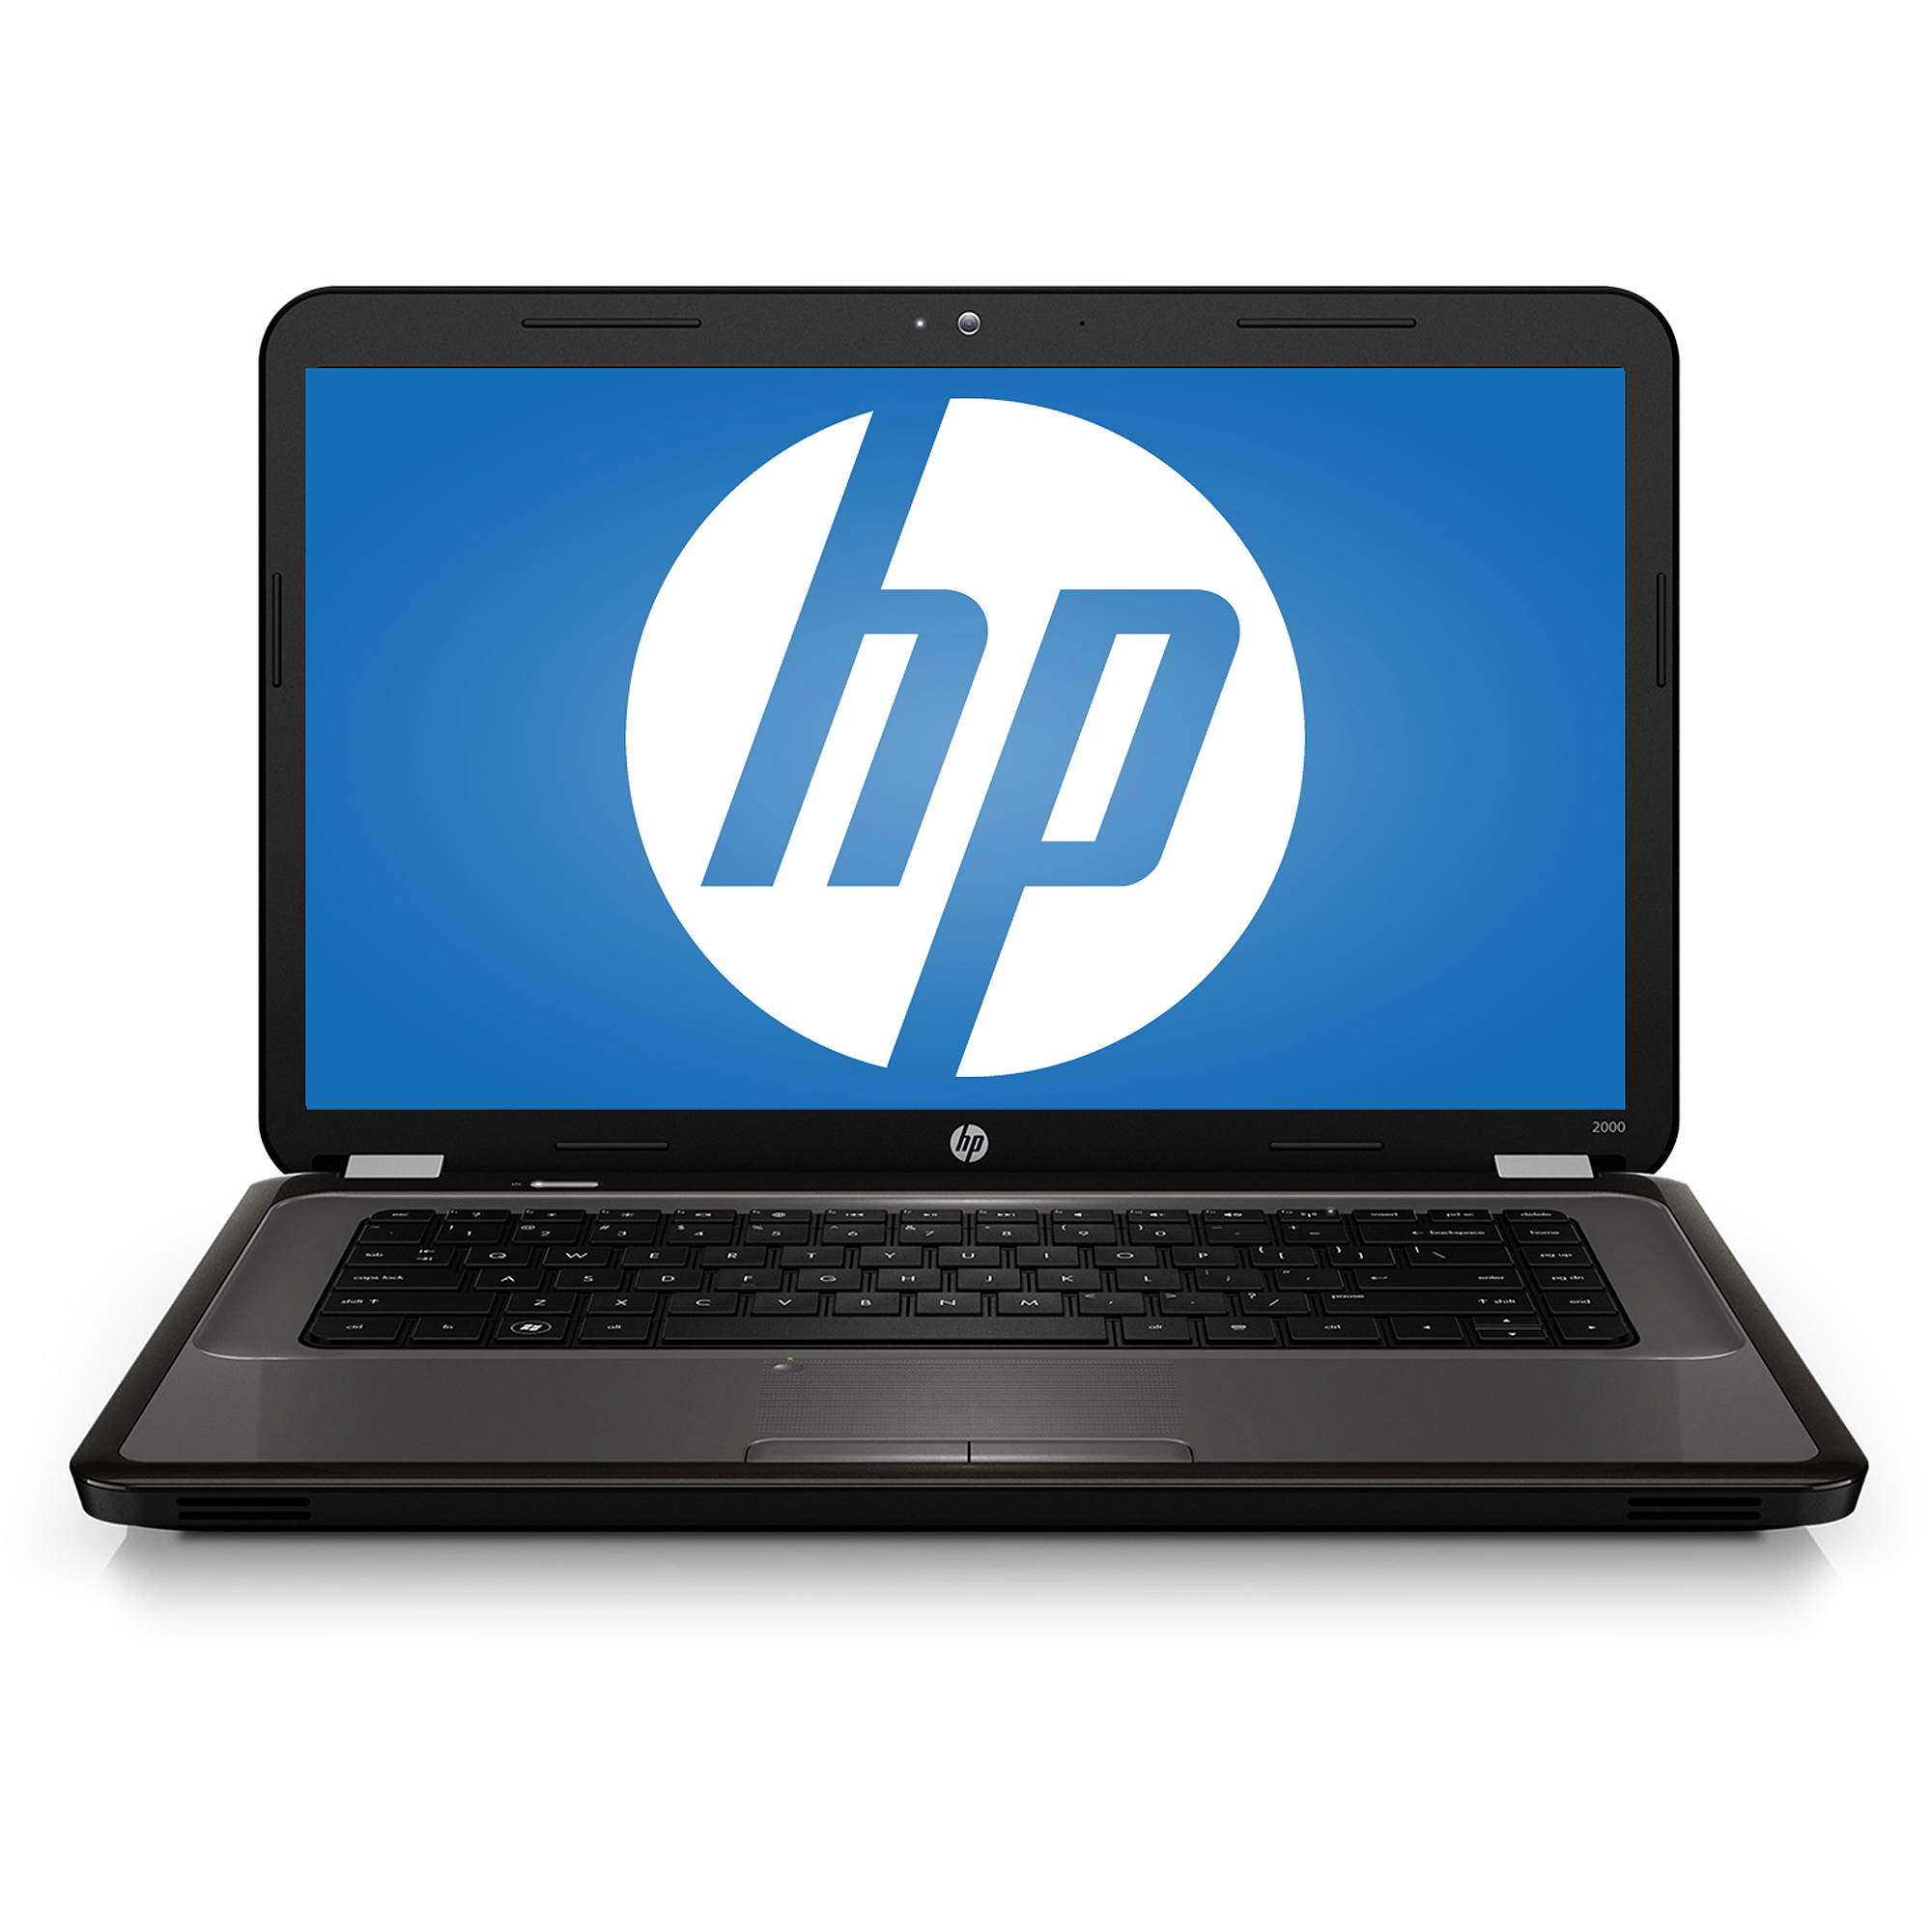 "TEST001-HP 2000-BF69WM AMD E-300 X2 1.3GHz 4GB 320GB DVD+/-RW 15.6"" Win8 (Charcoal Gray) (3rd Party Refurbished)"